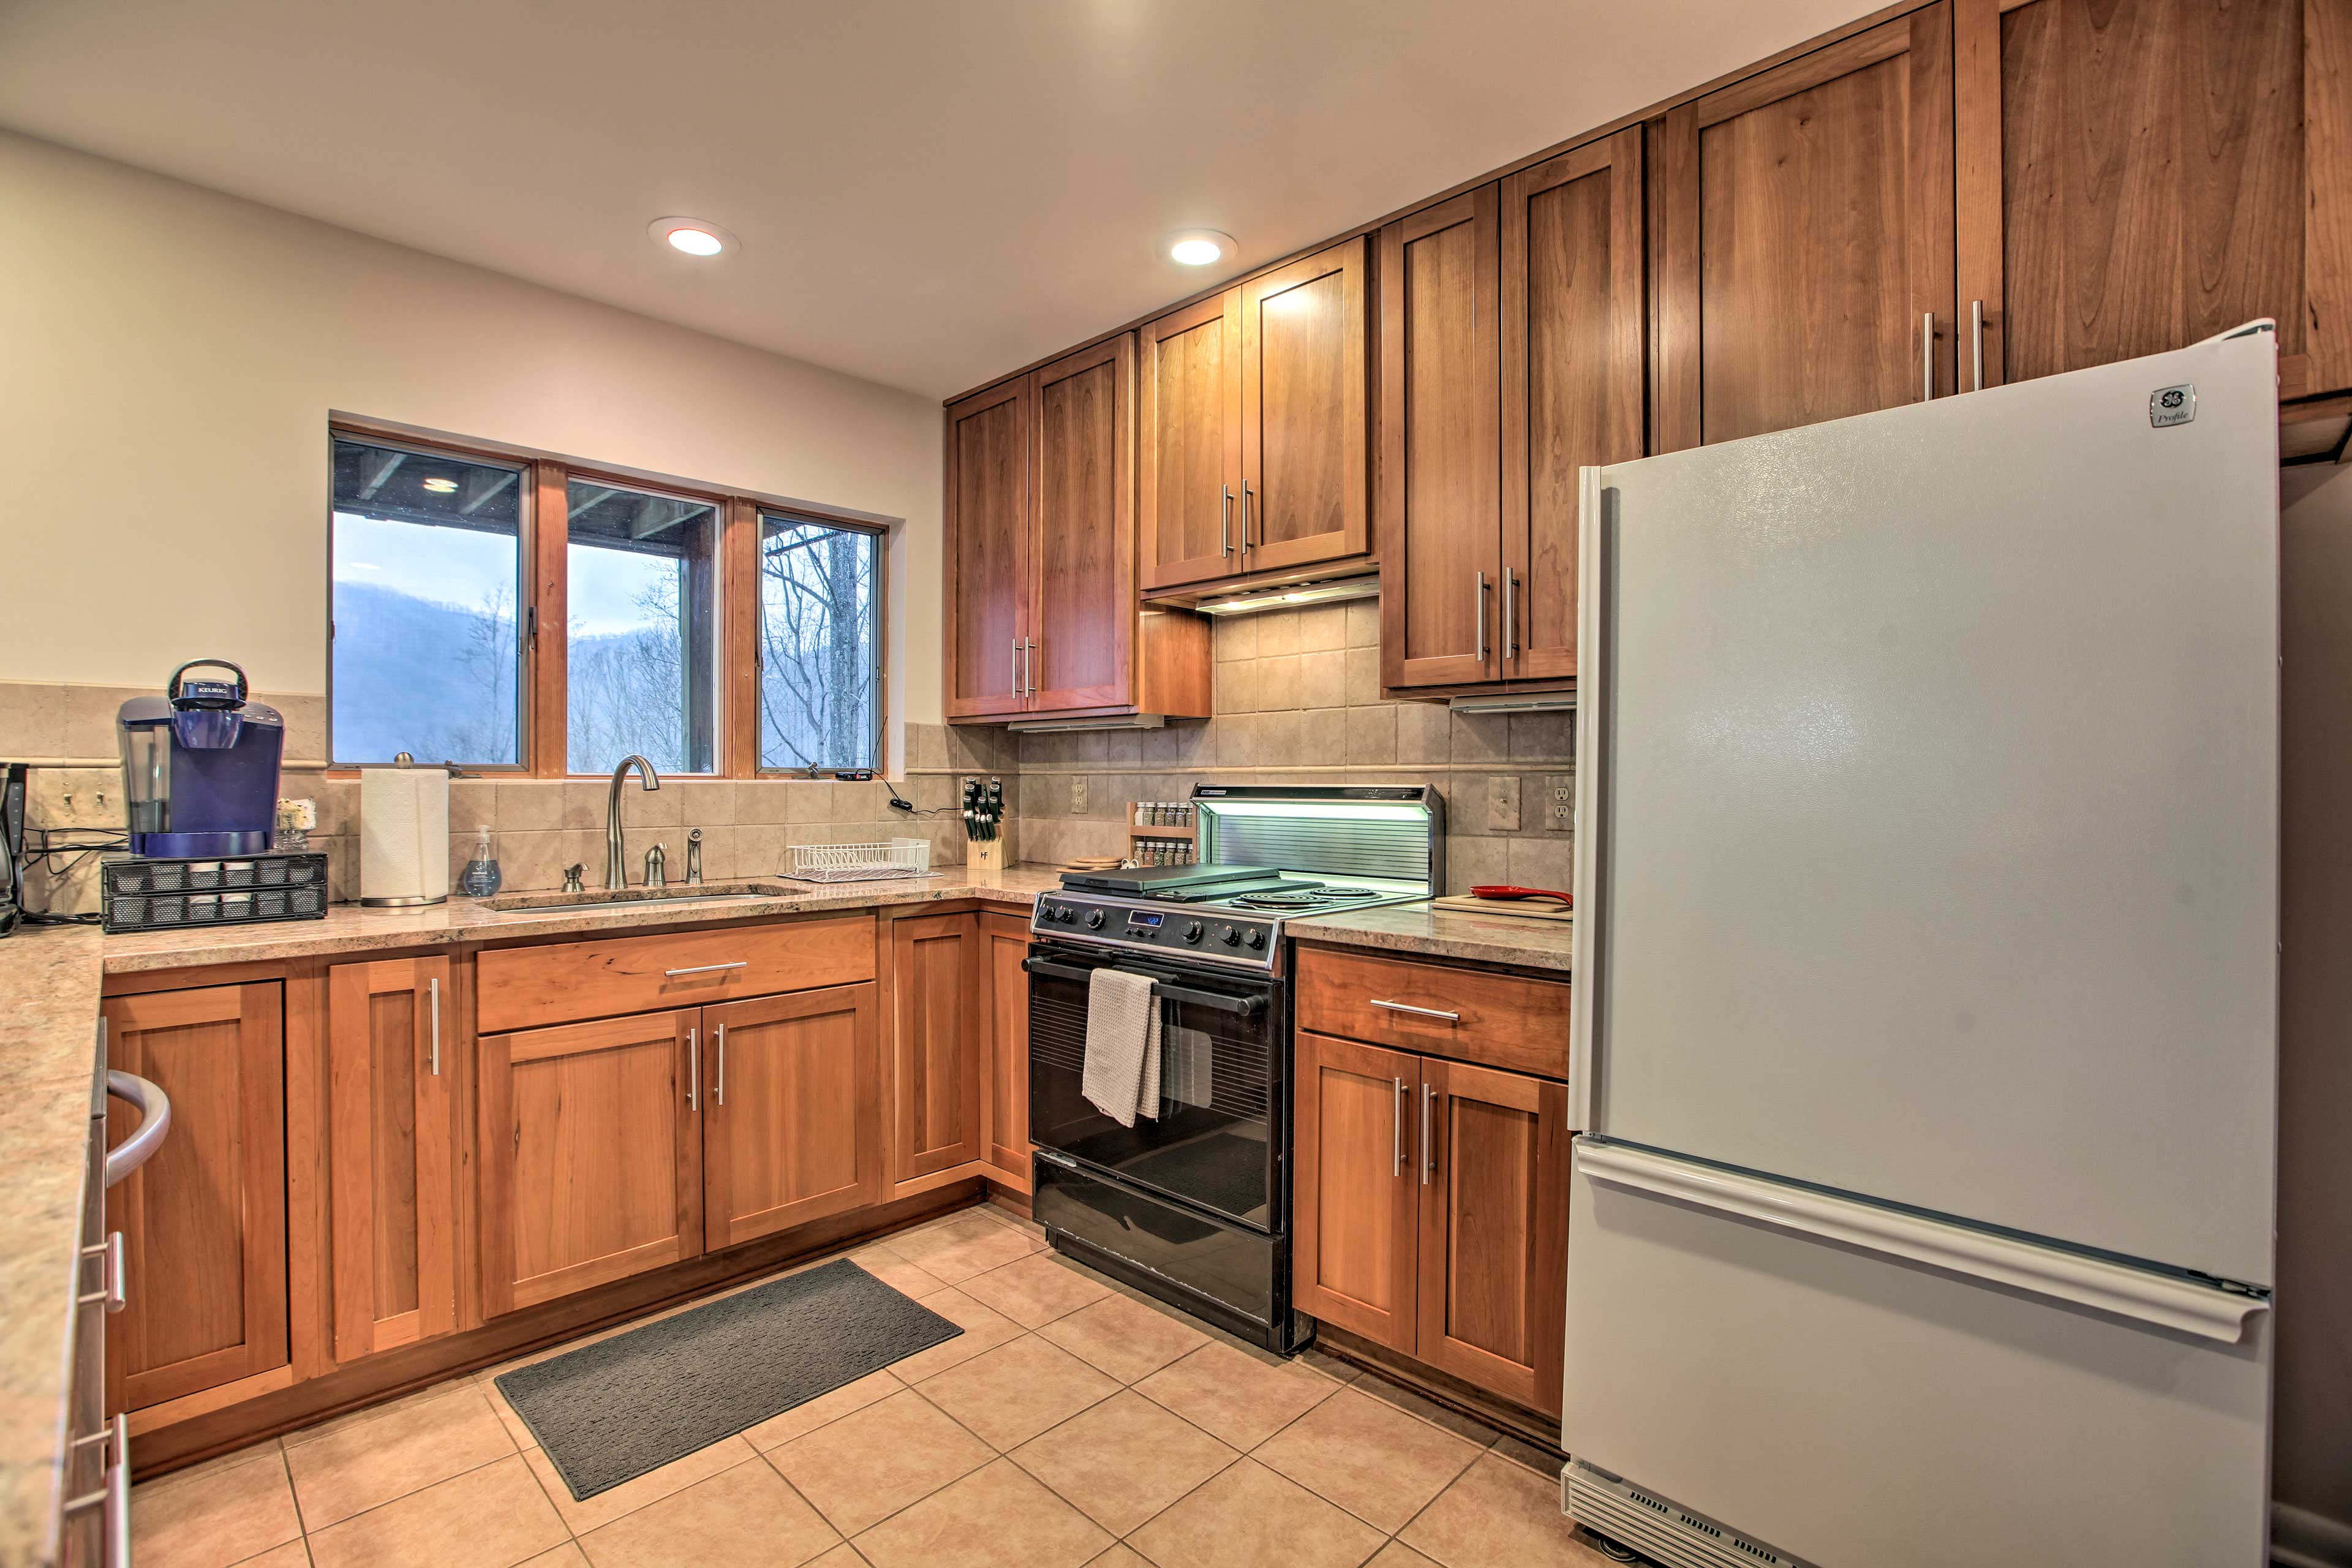 When hunger strikes, prepare a delicious meal in this kitchen.